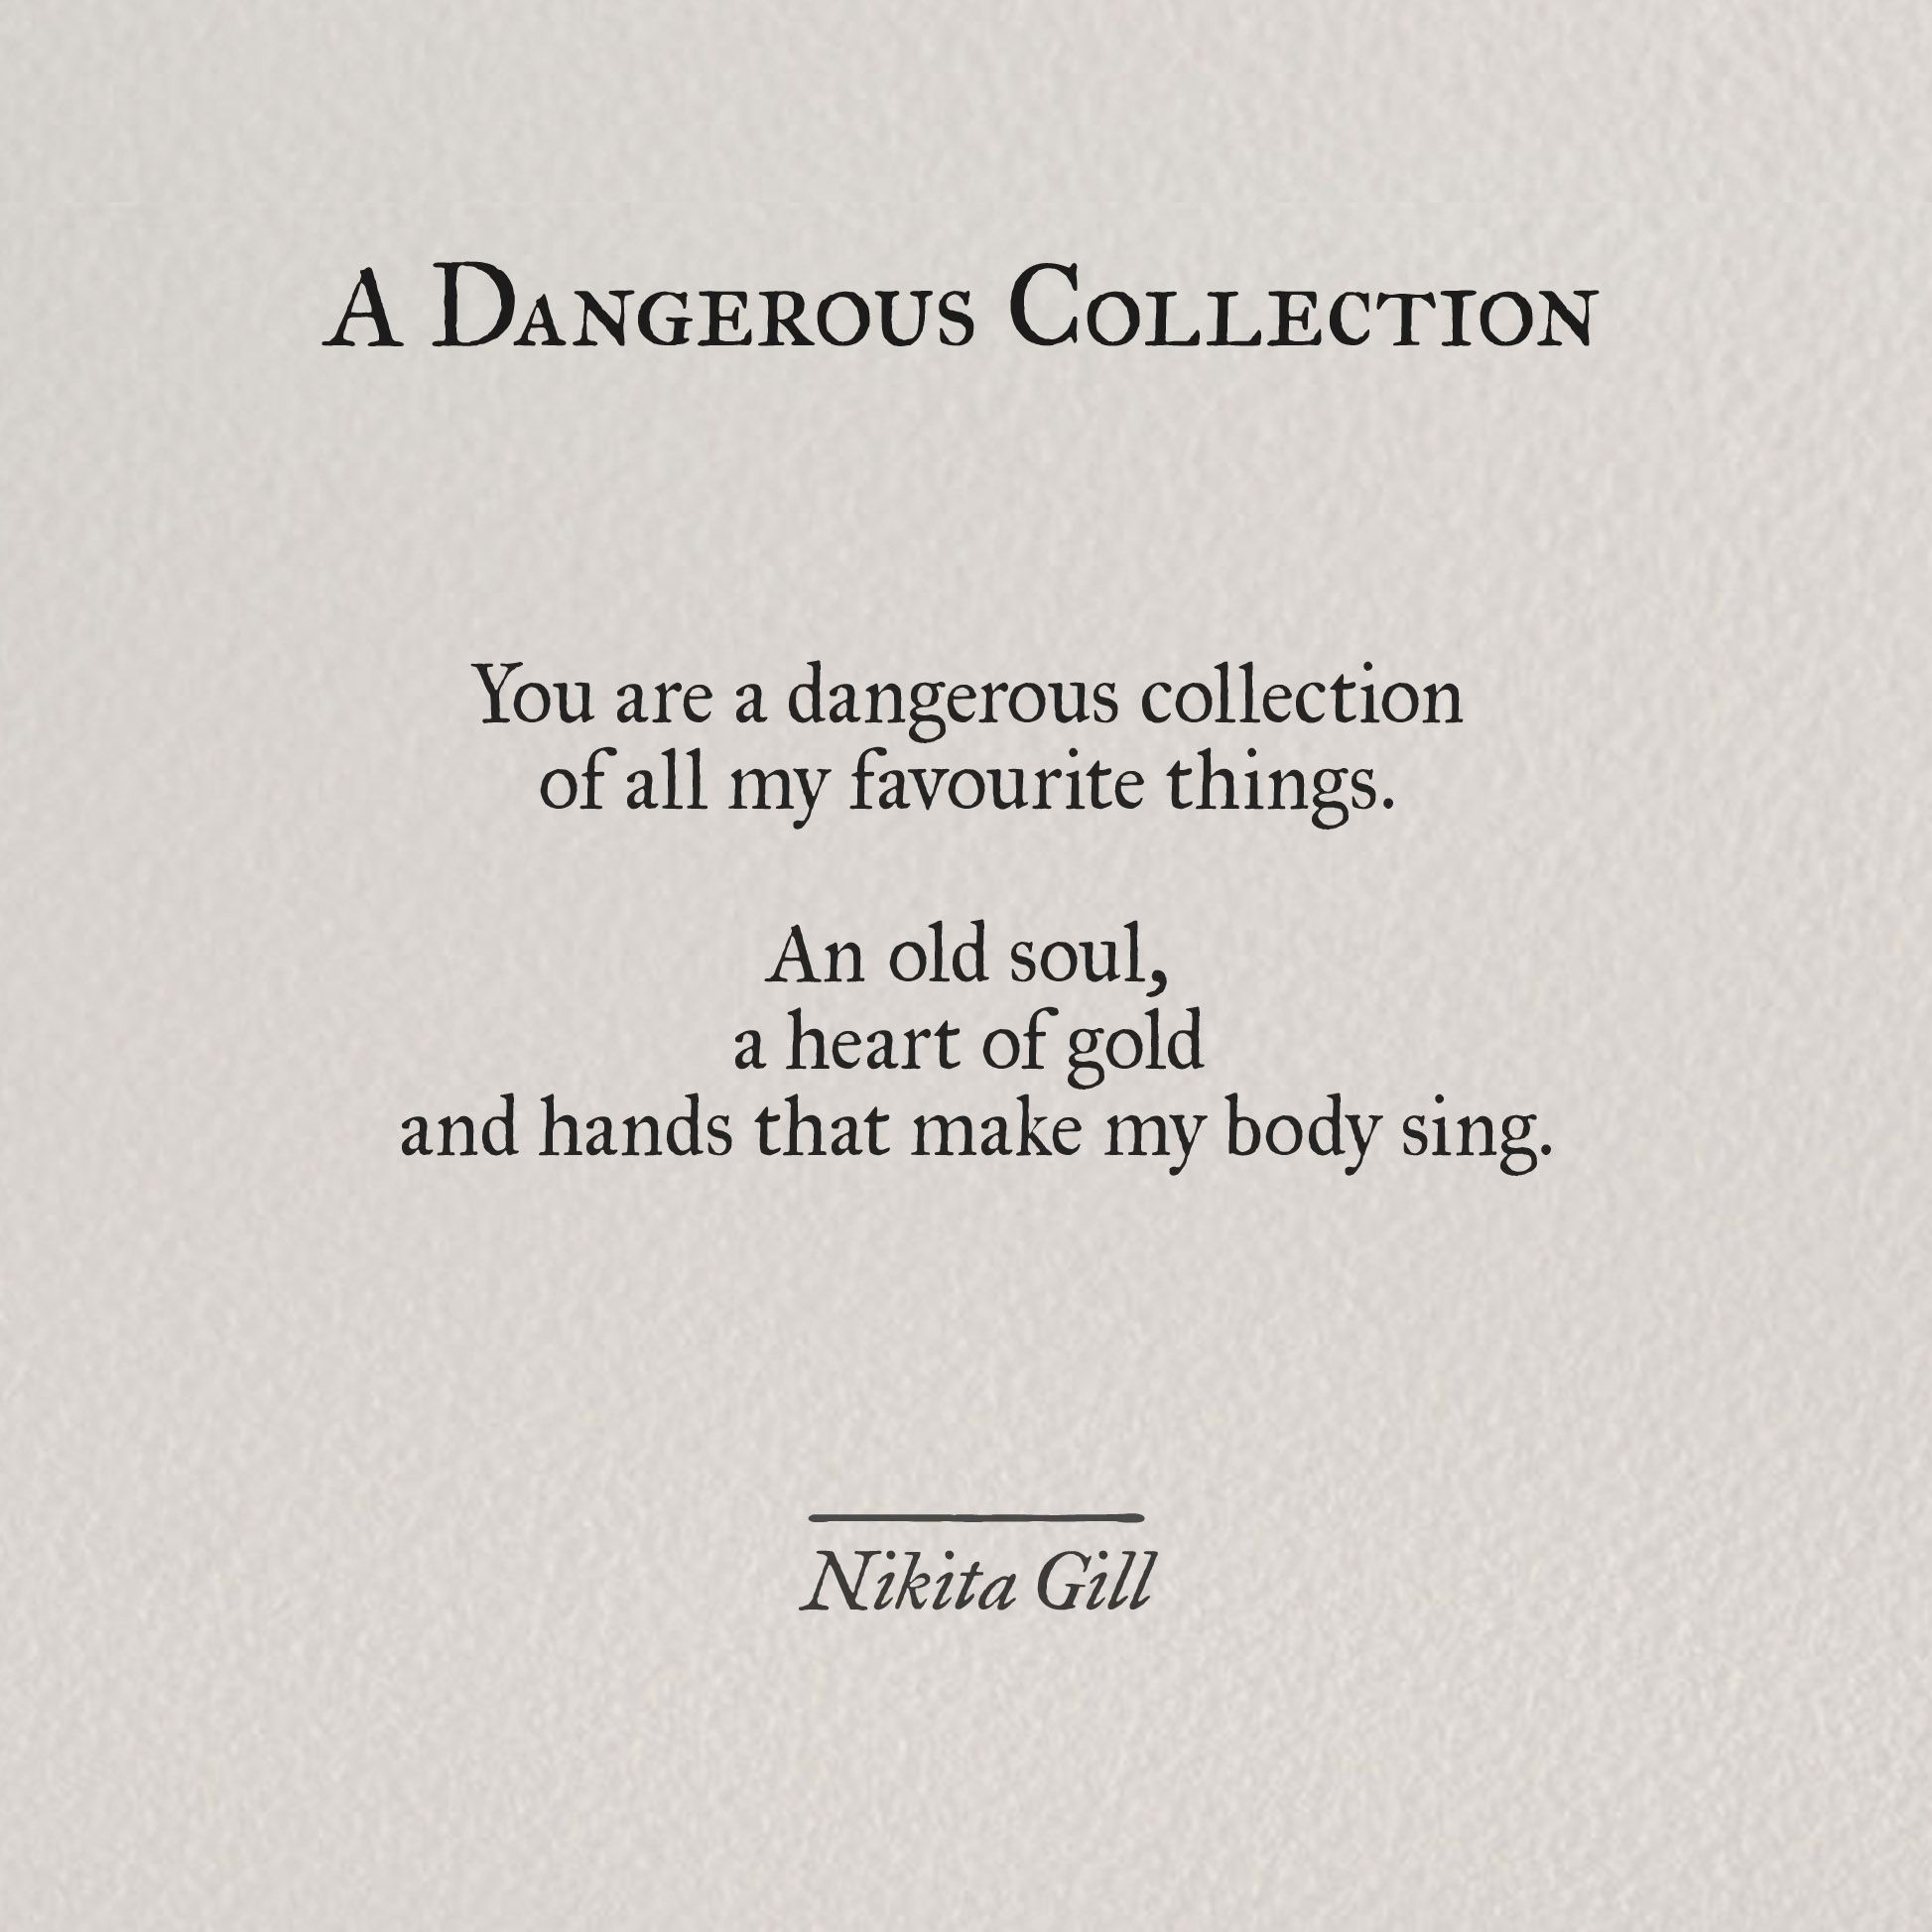 you are a dangerous collection of all my favorite things: an old